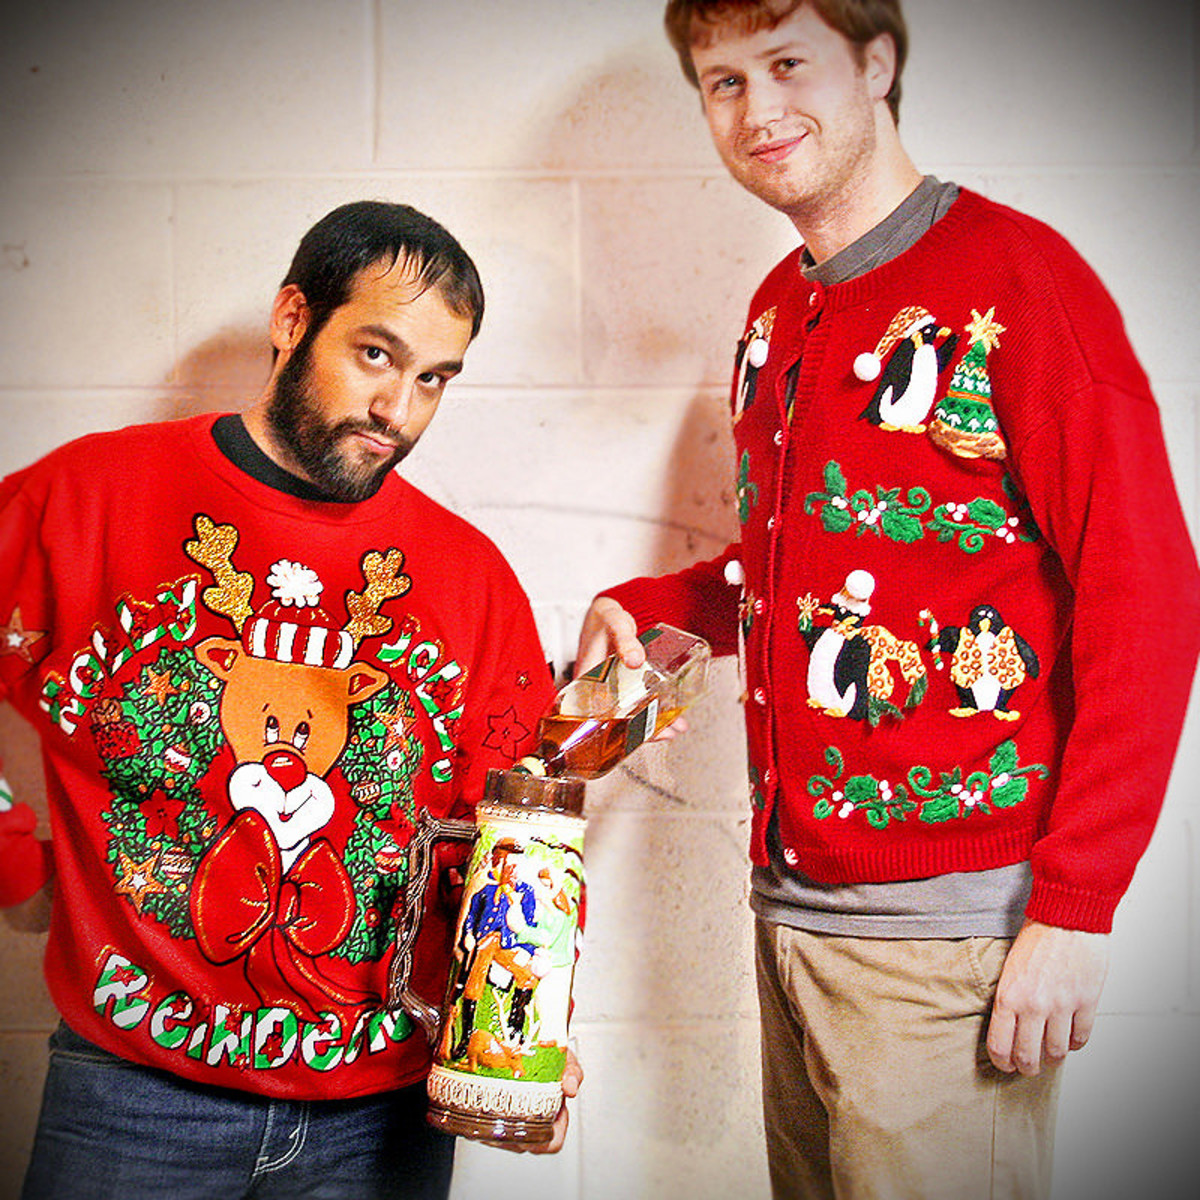 People wearing ugly sweaters.